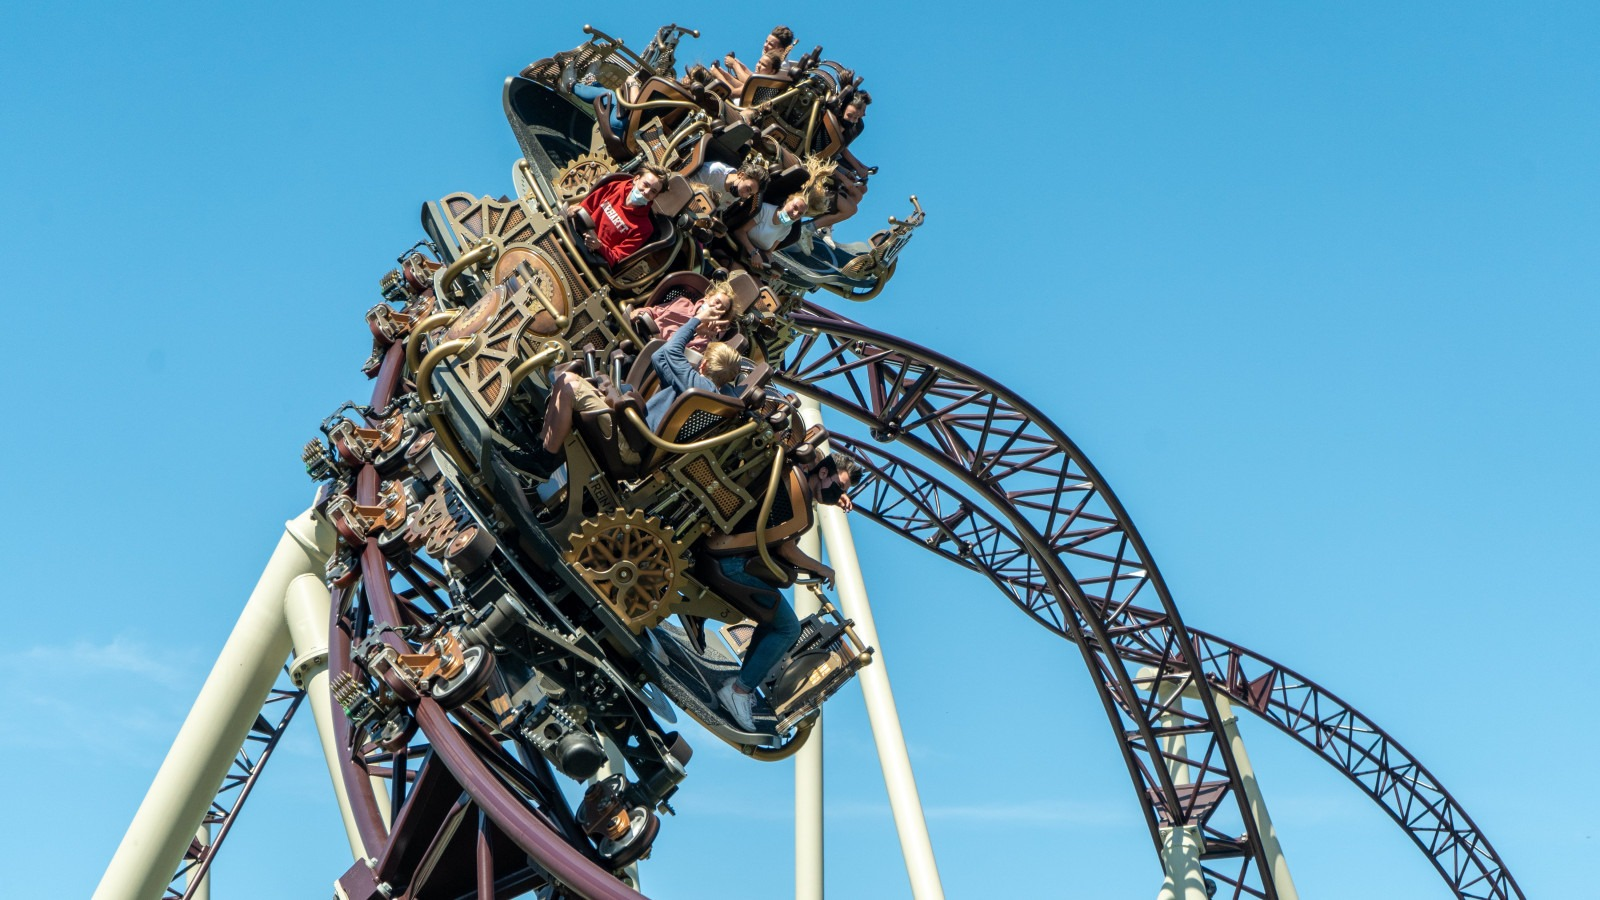 Tomorrowland Roller Coaster Wins Best New Roller Coaster in Europe